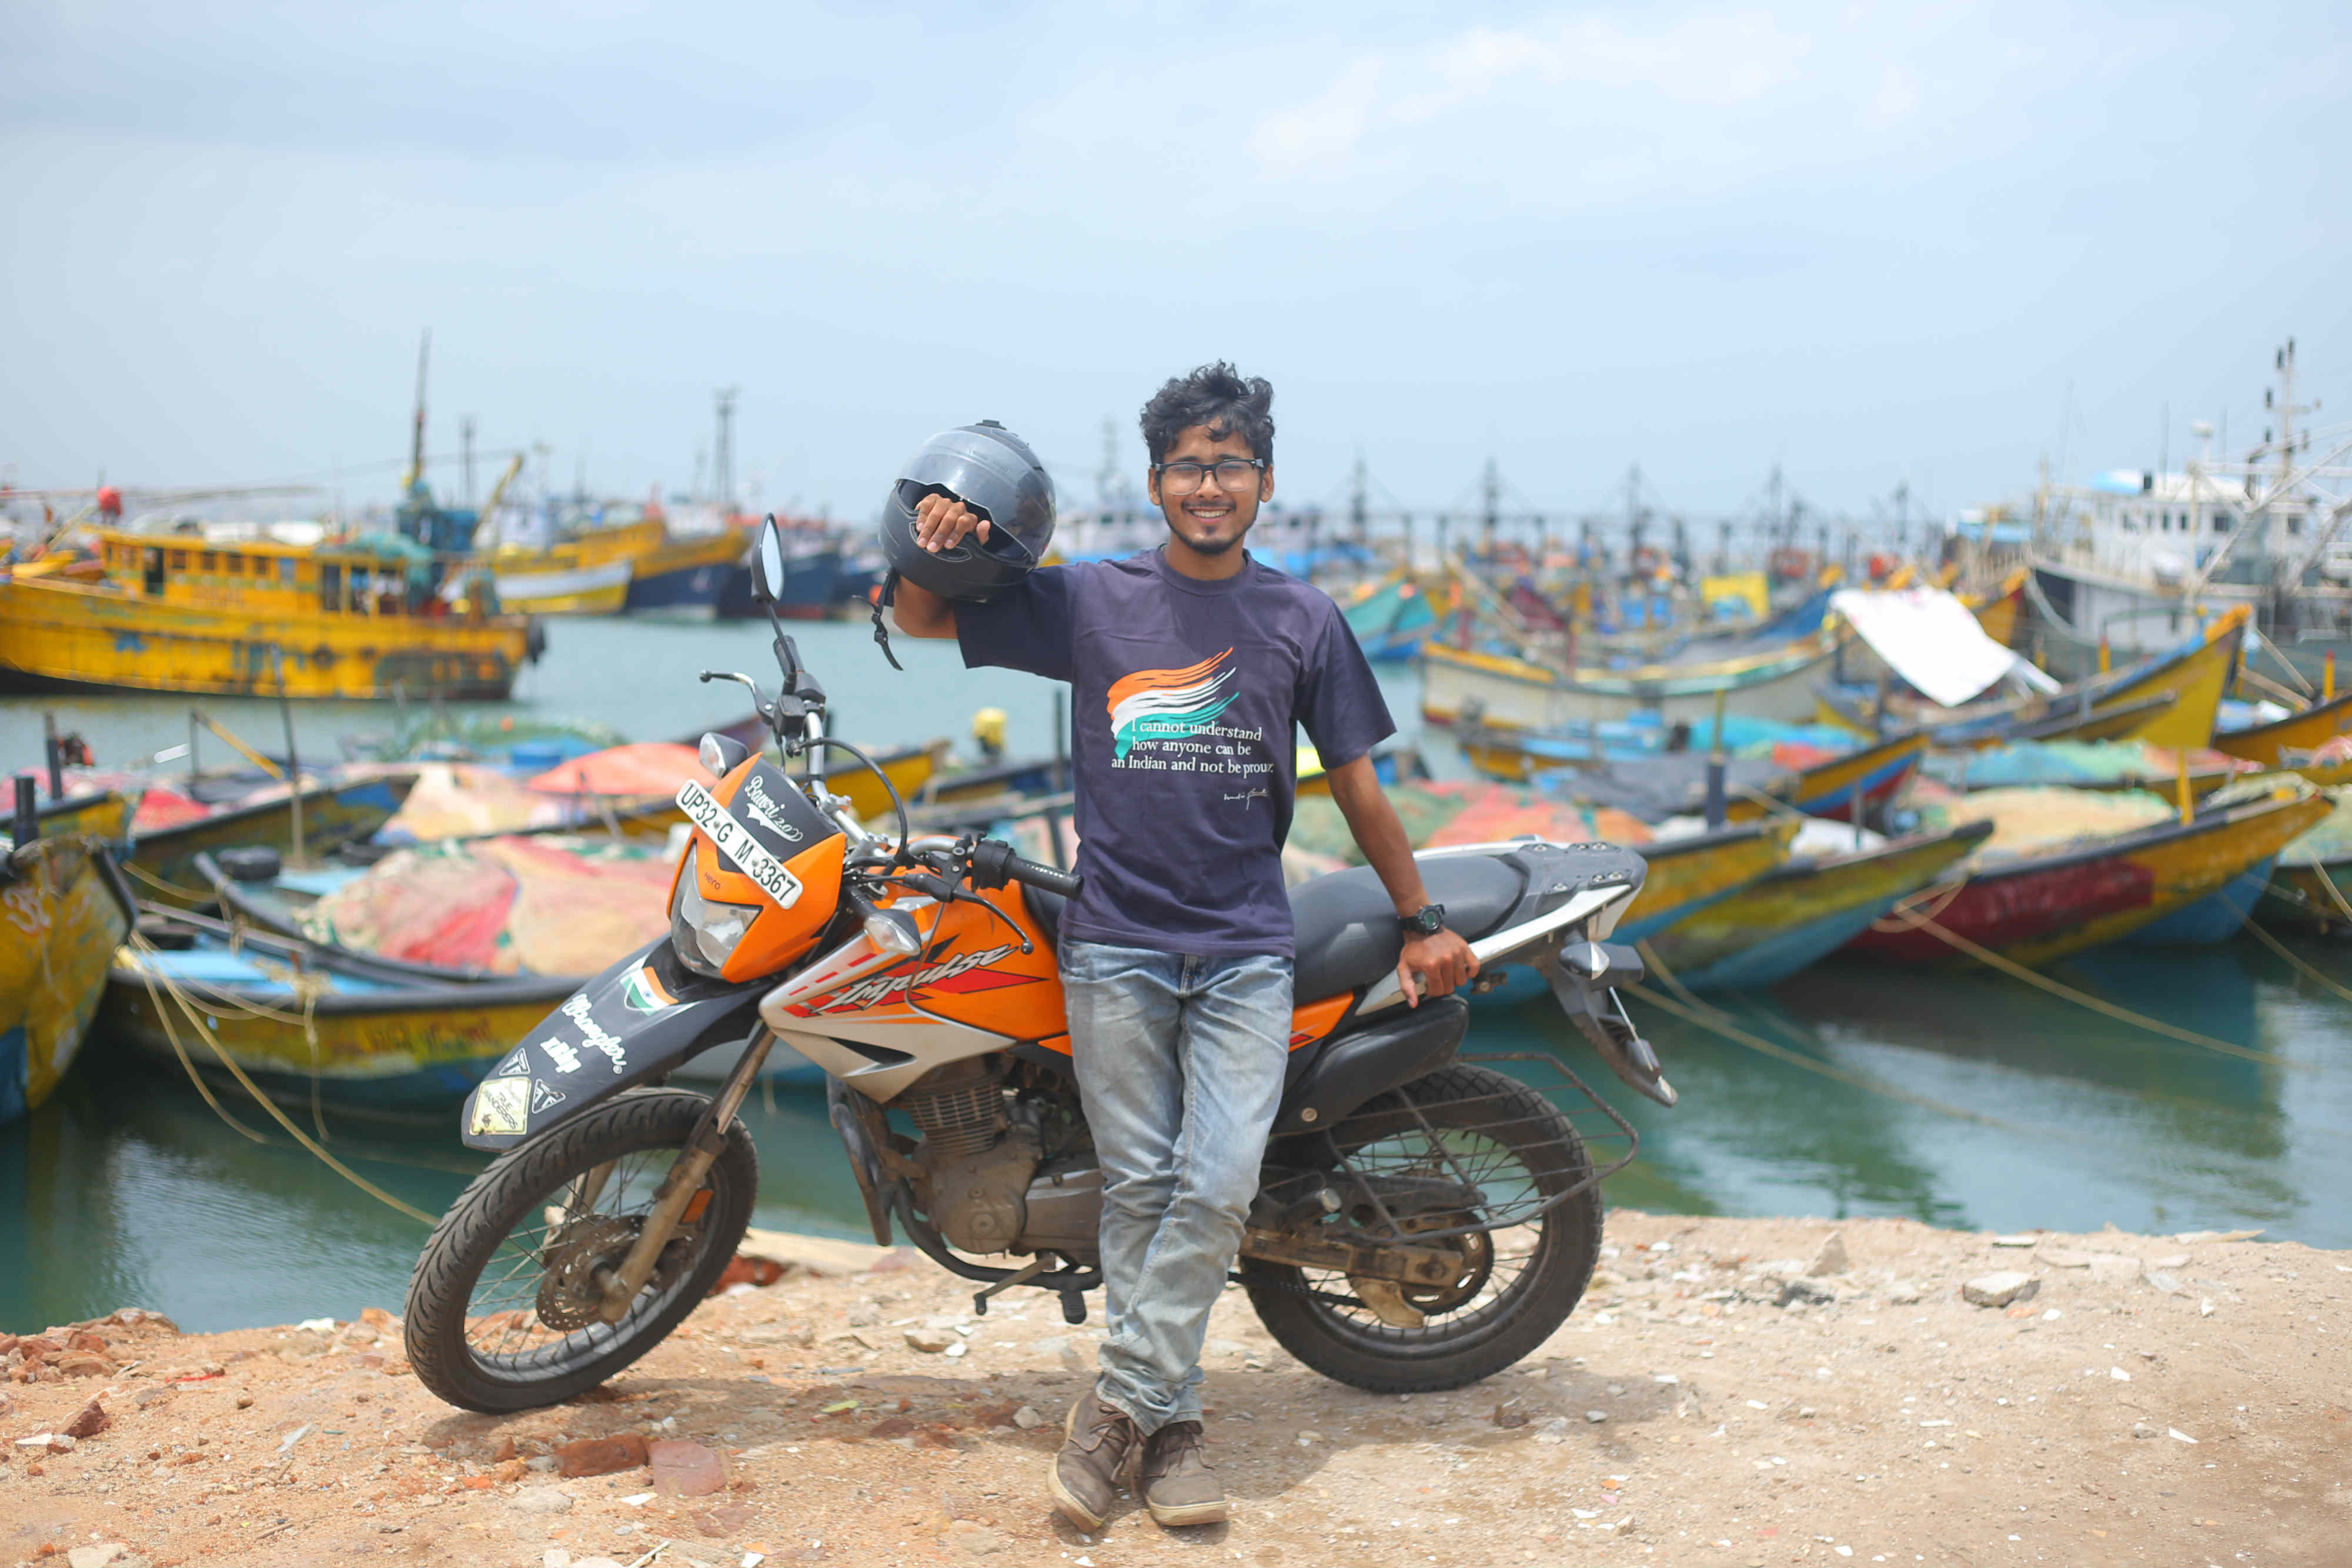 Longest journey by motorcycle in a single country (individual)